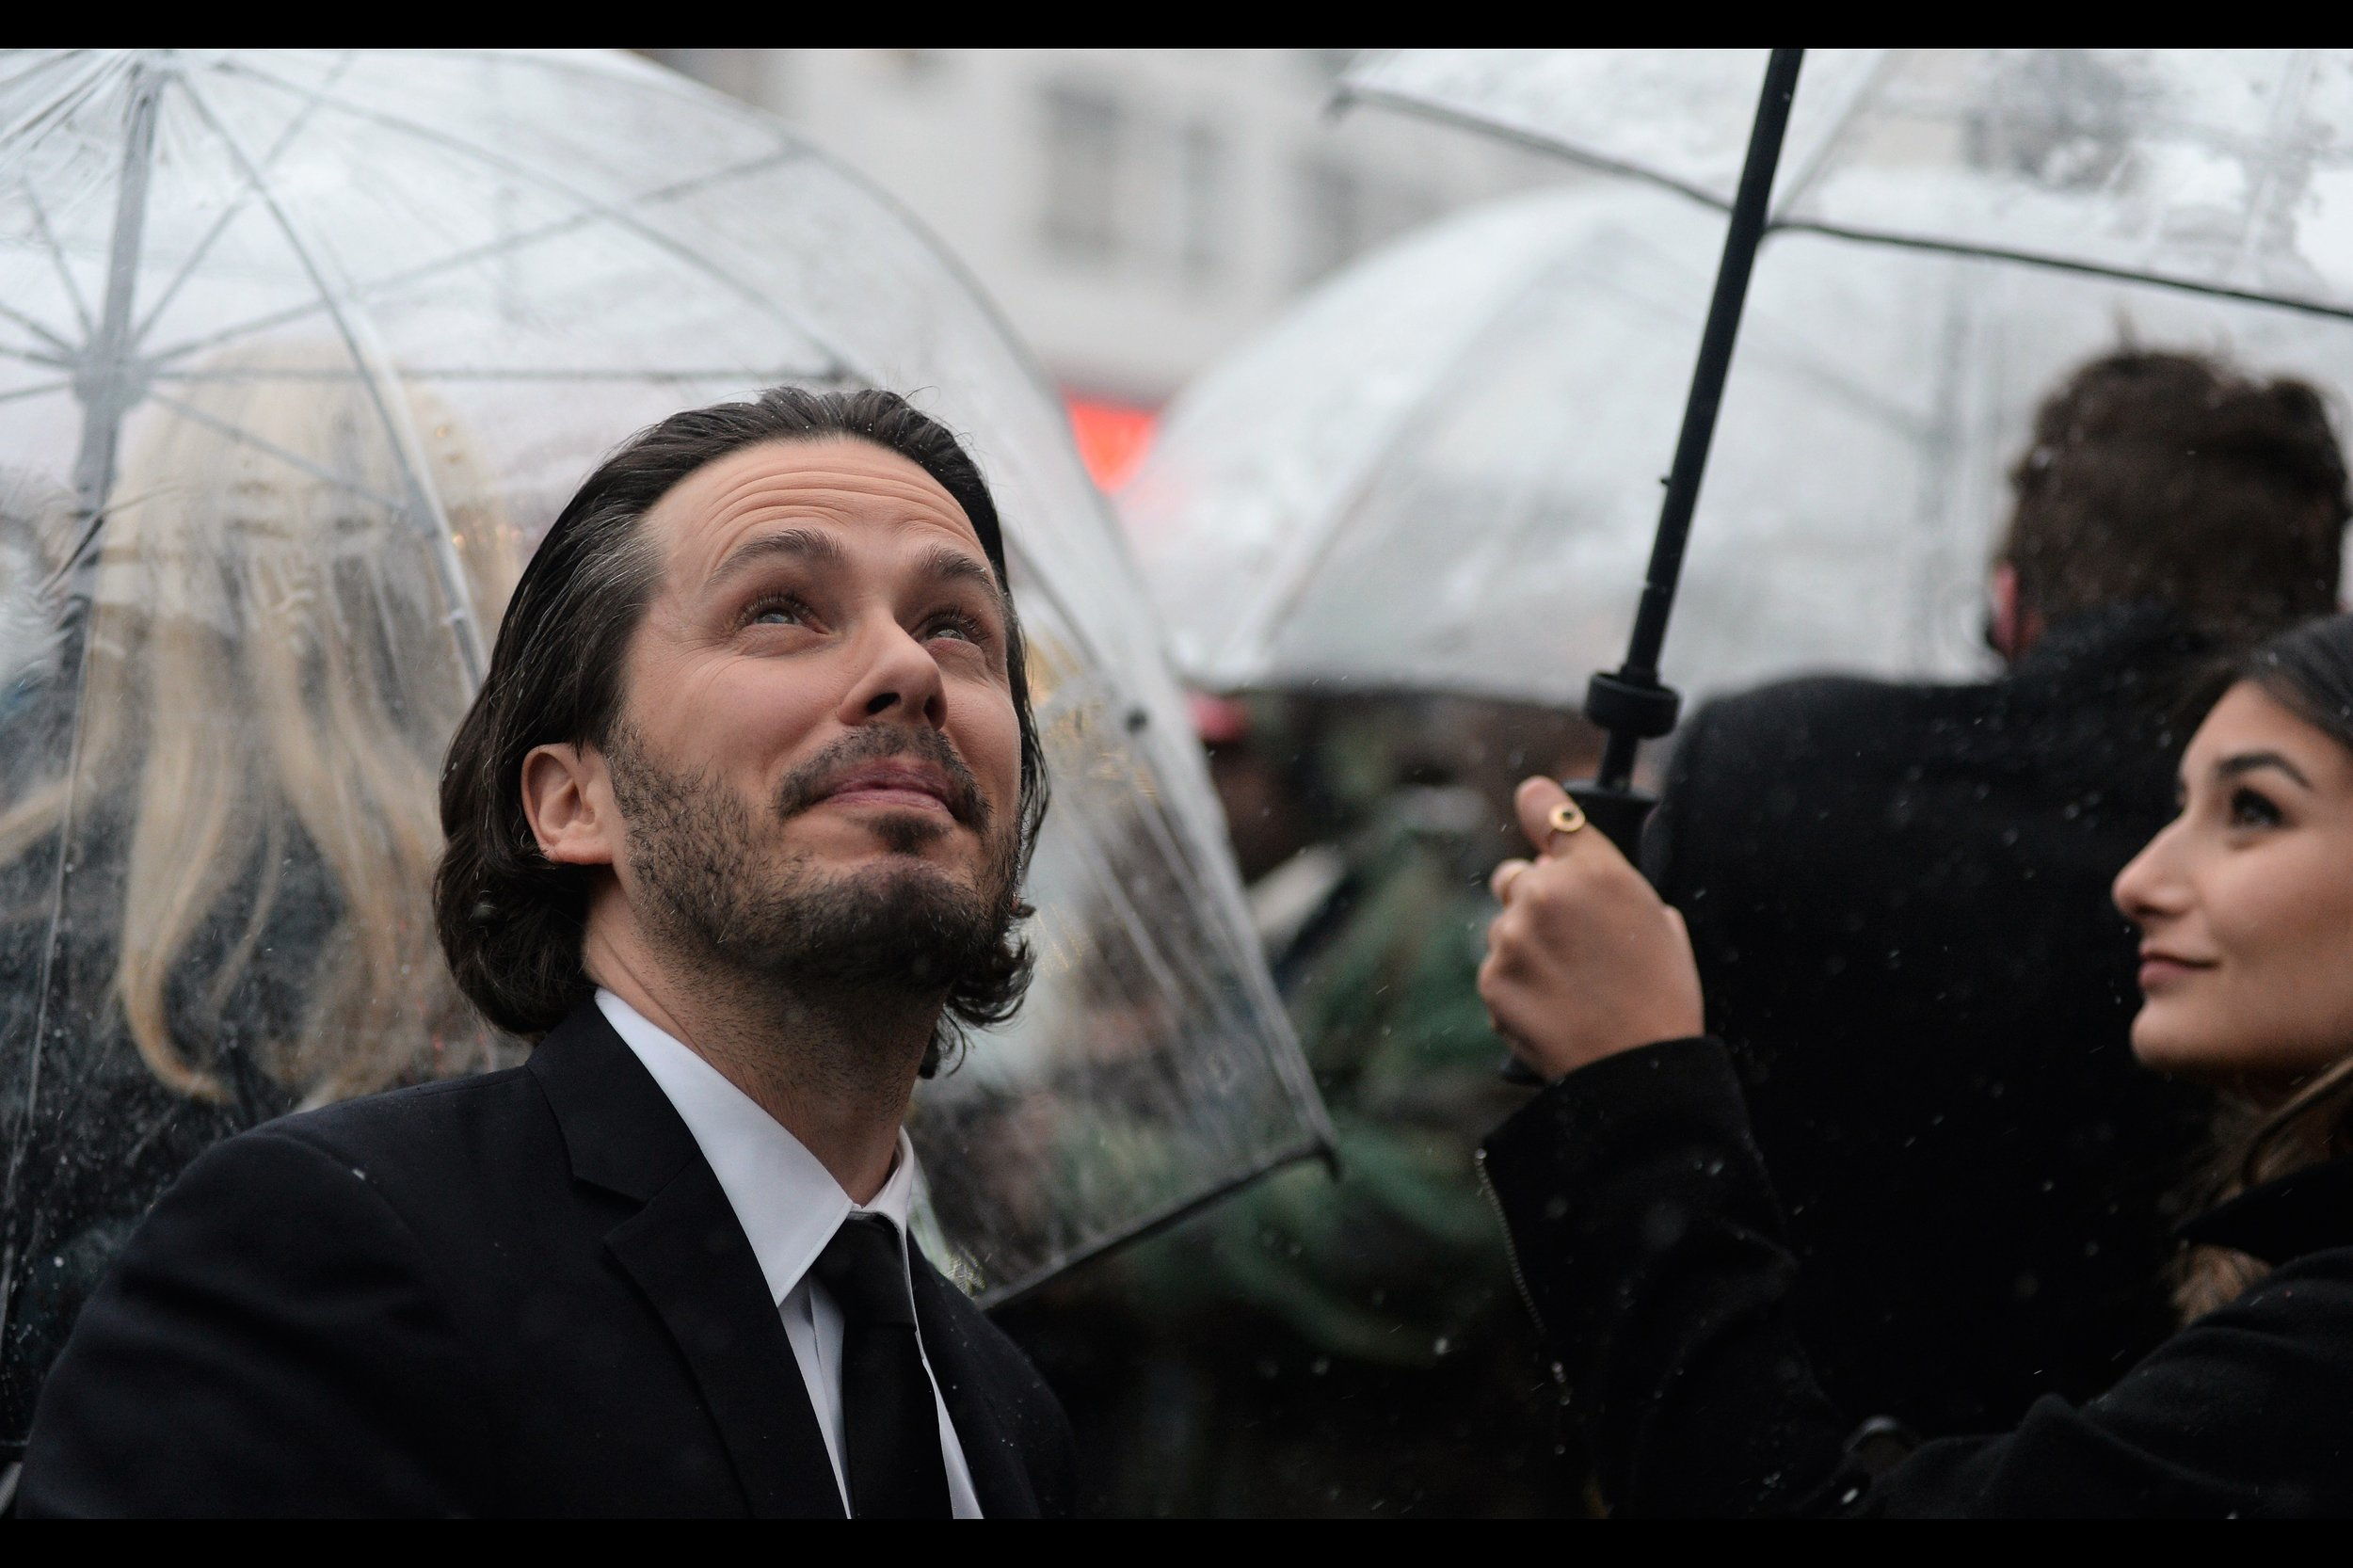 """""""Let's just take a moment to remember, people, that tiny bits of harmless solid water are falling from the sky and we are all here to see them and be moved by it""""  - Edgar Wright has directed three movies I really liked :    Baby Driver   , Scott Pilgrim vs the World, and Shaun of the Dead."""